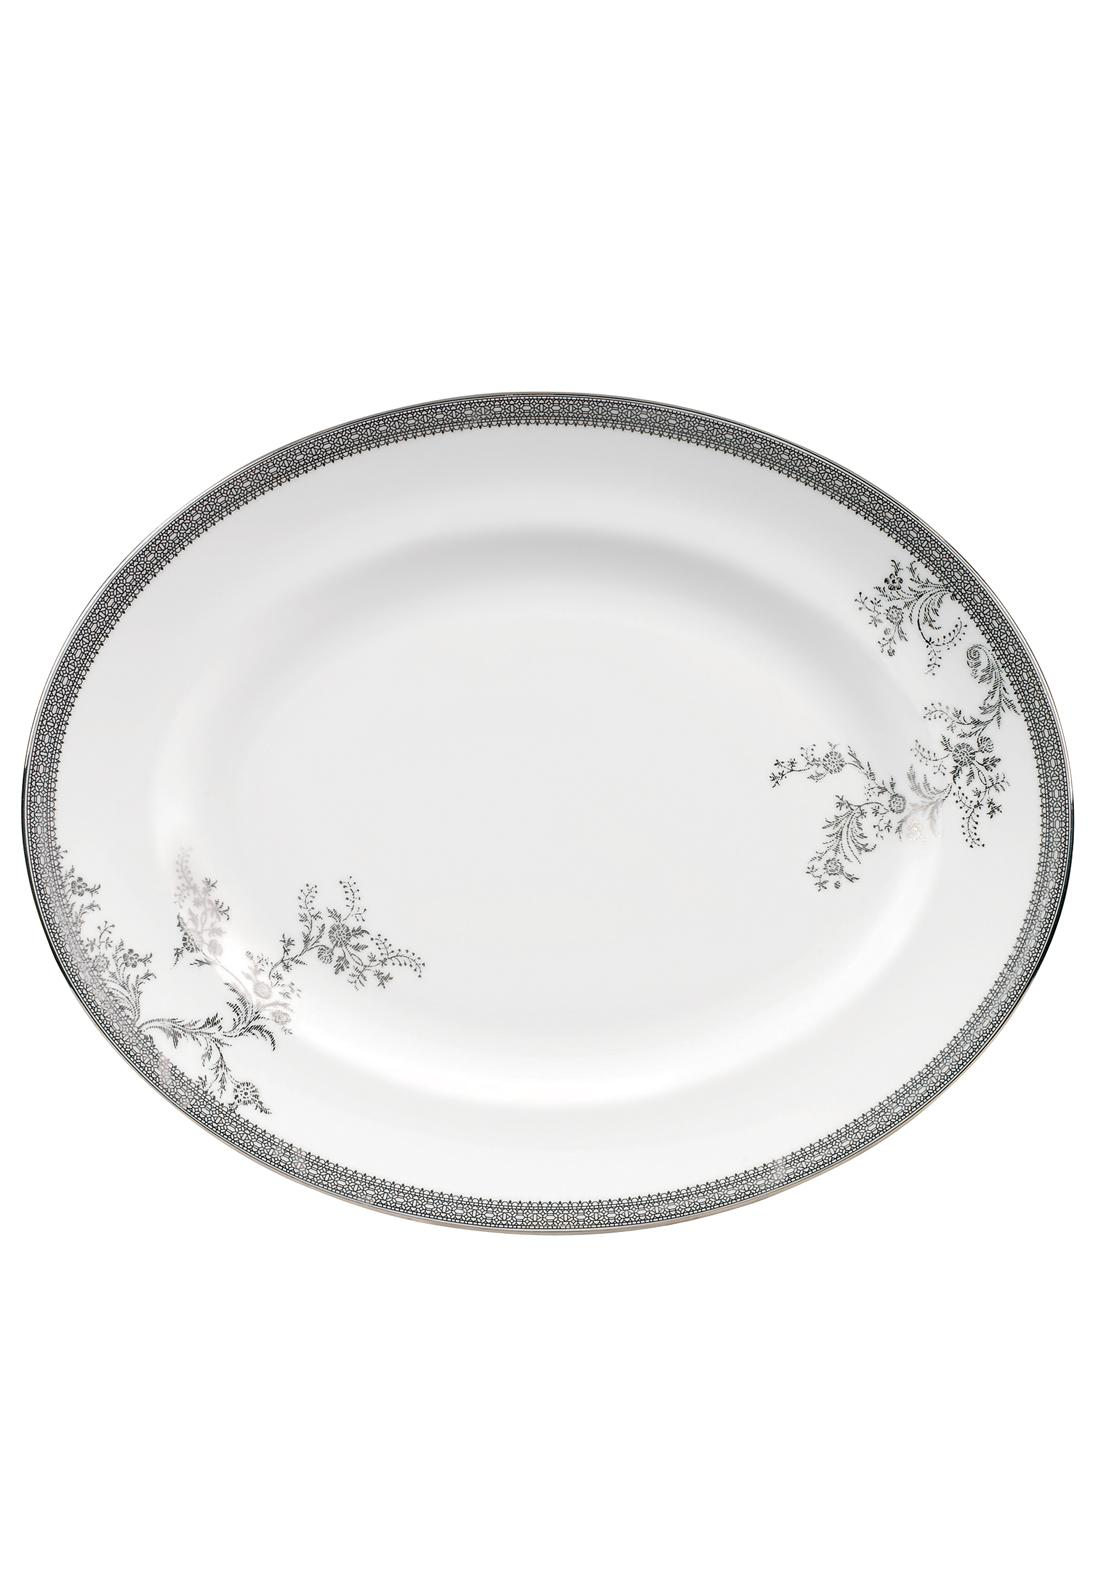 Vera Wang Wedgwood Lace Platinum Oval Dish, Large